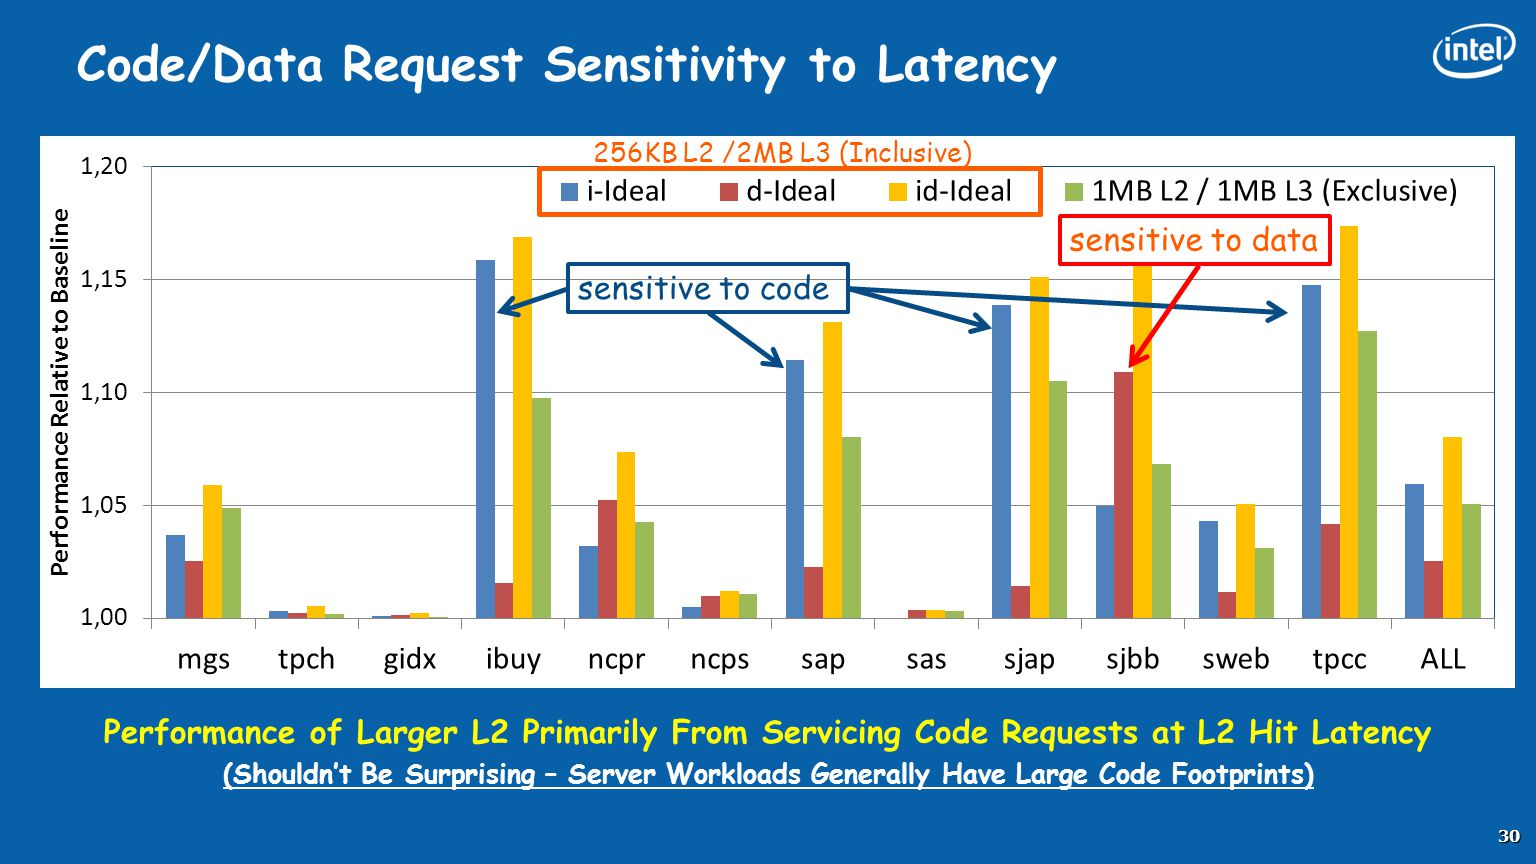 Code/Data Request Sensitivity to Latency